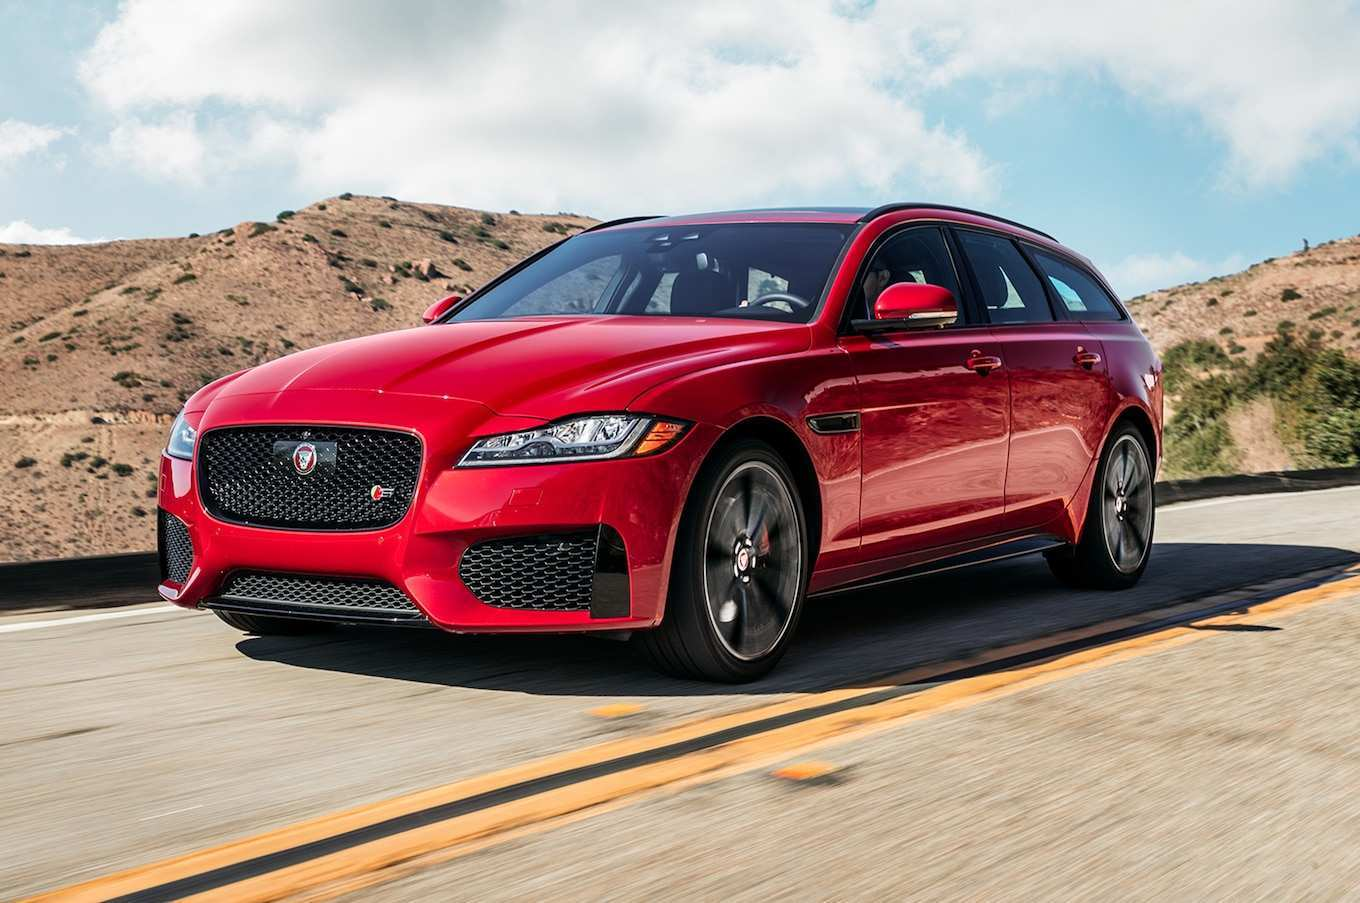 91 Great 2019 Jaguar Wagon Performance by 2019 Jaguar Wagon